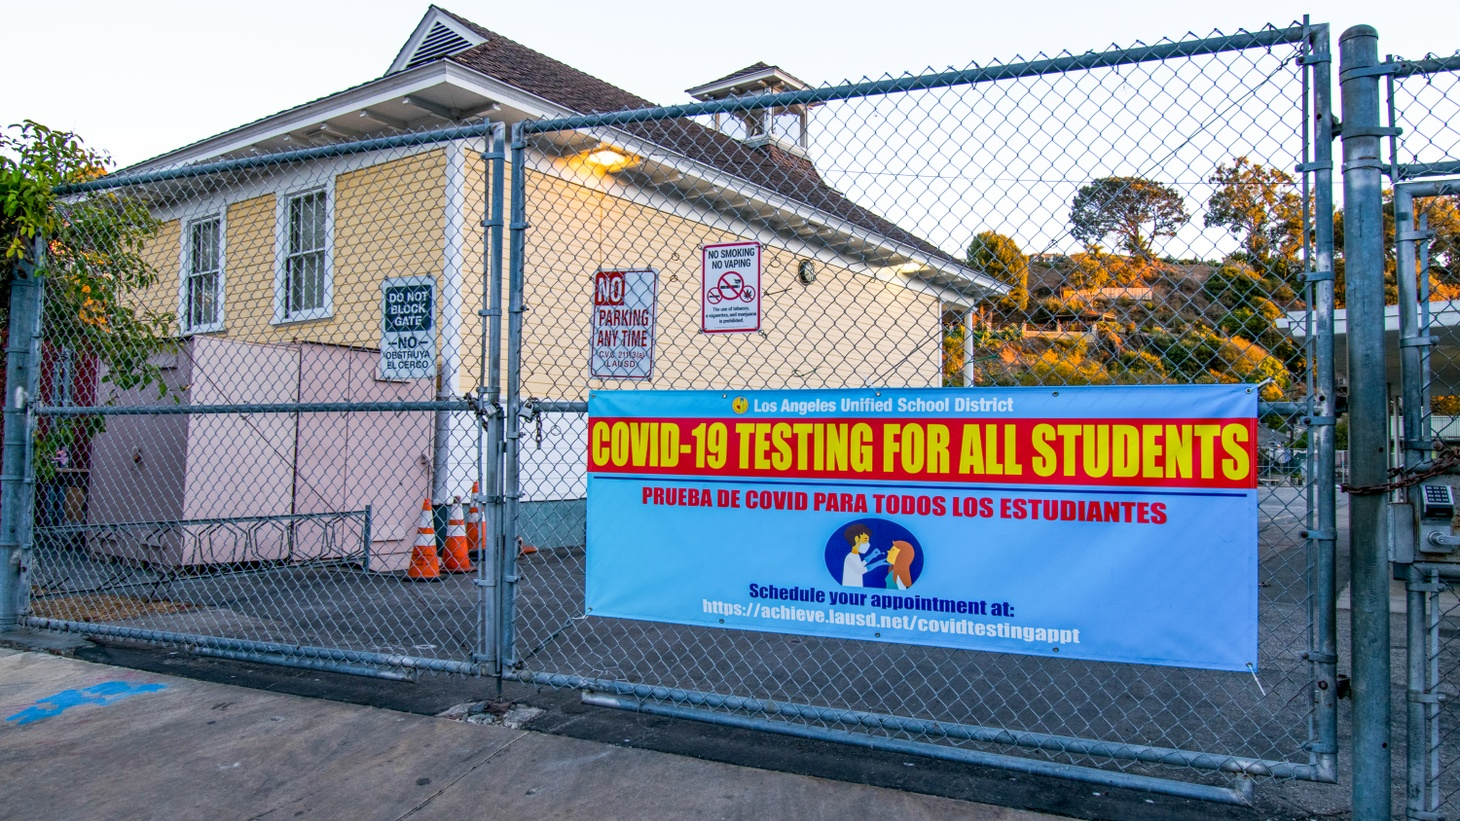 Canyon Charter Elementary in Santa Monica offers COVID-19 testing for all students.